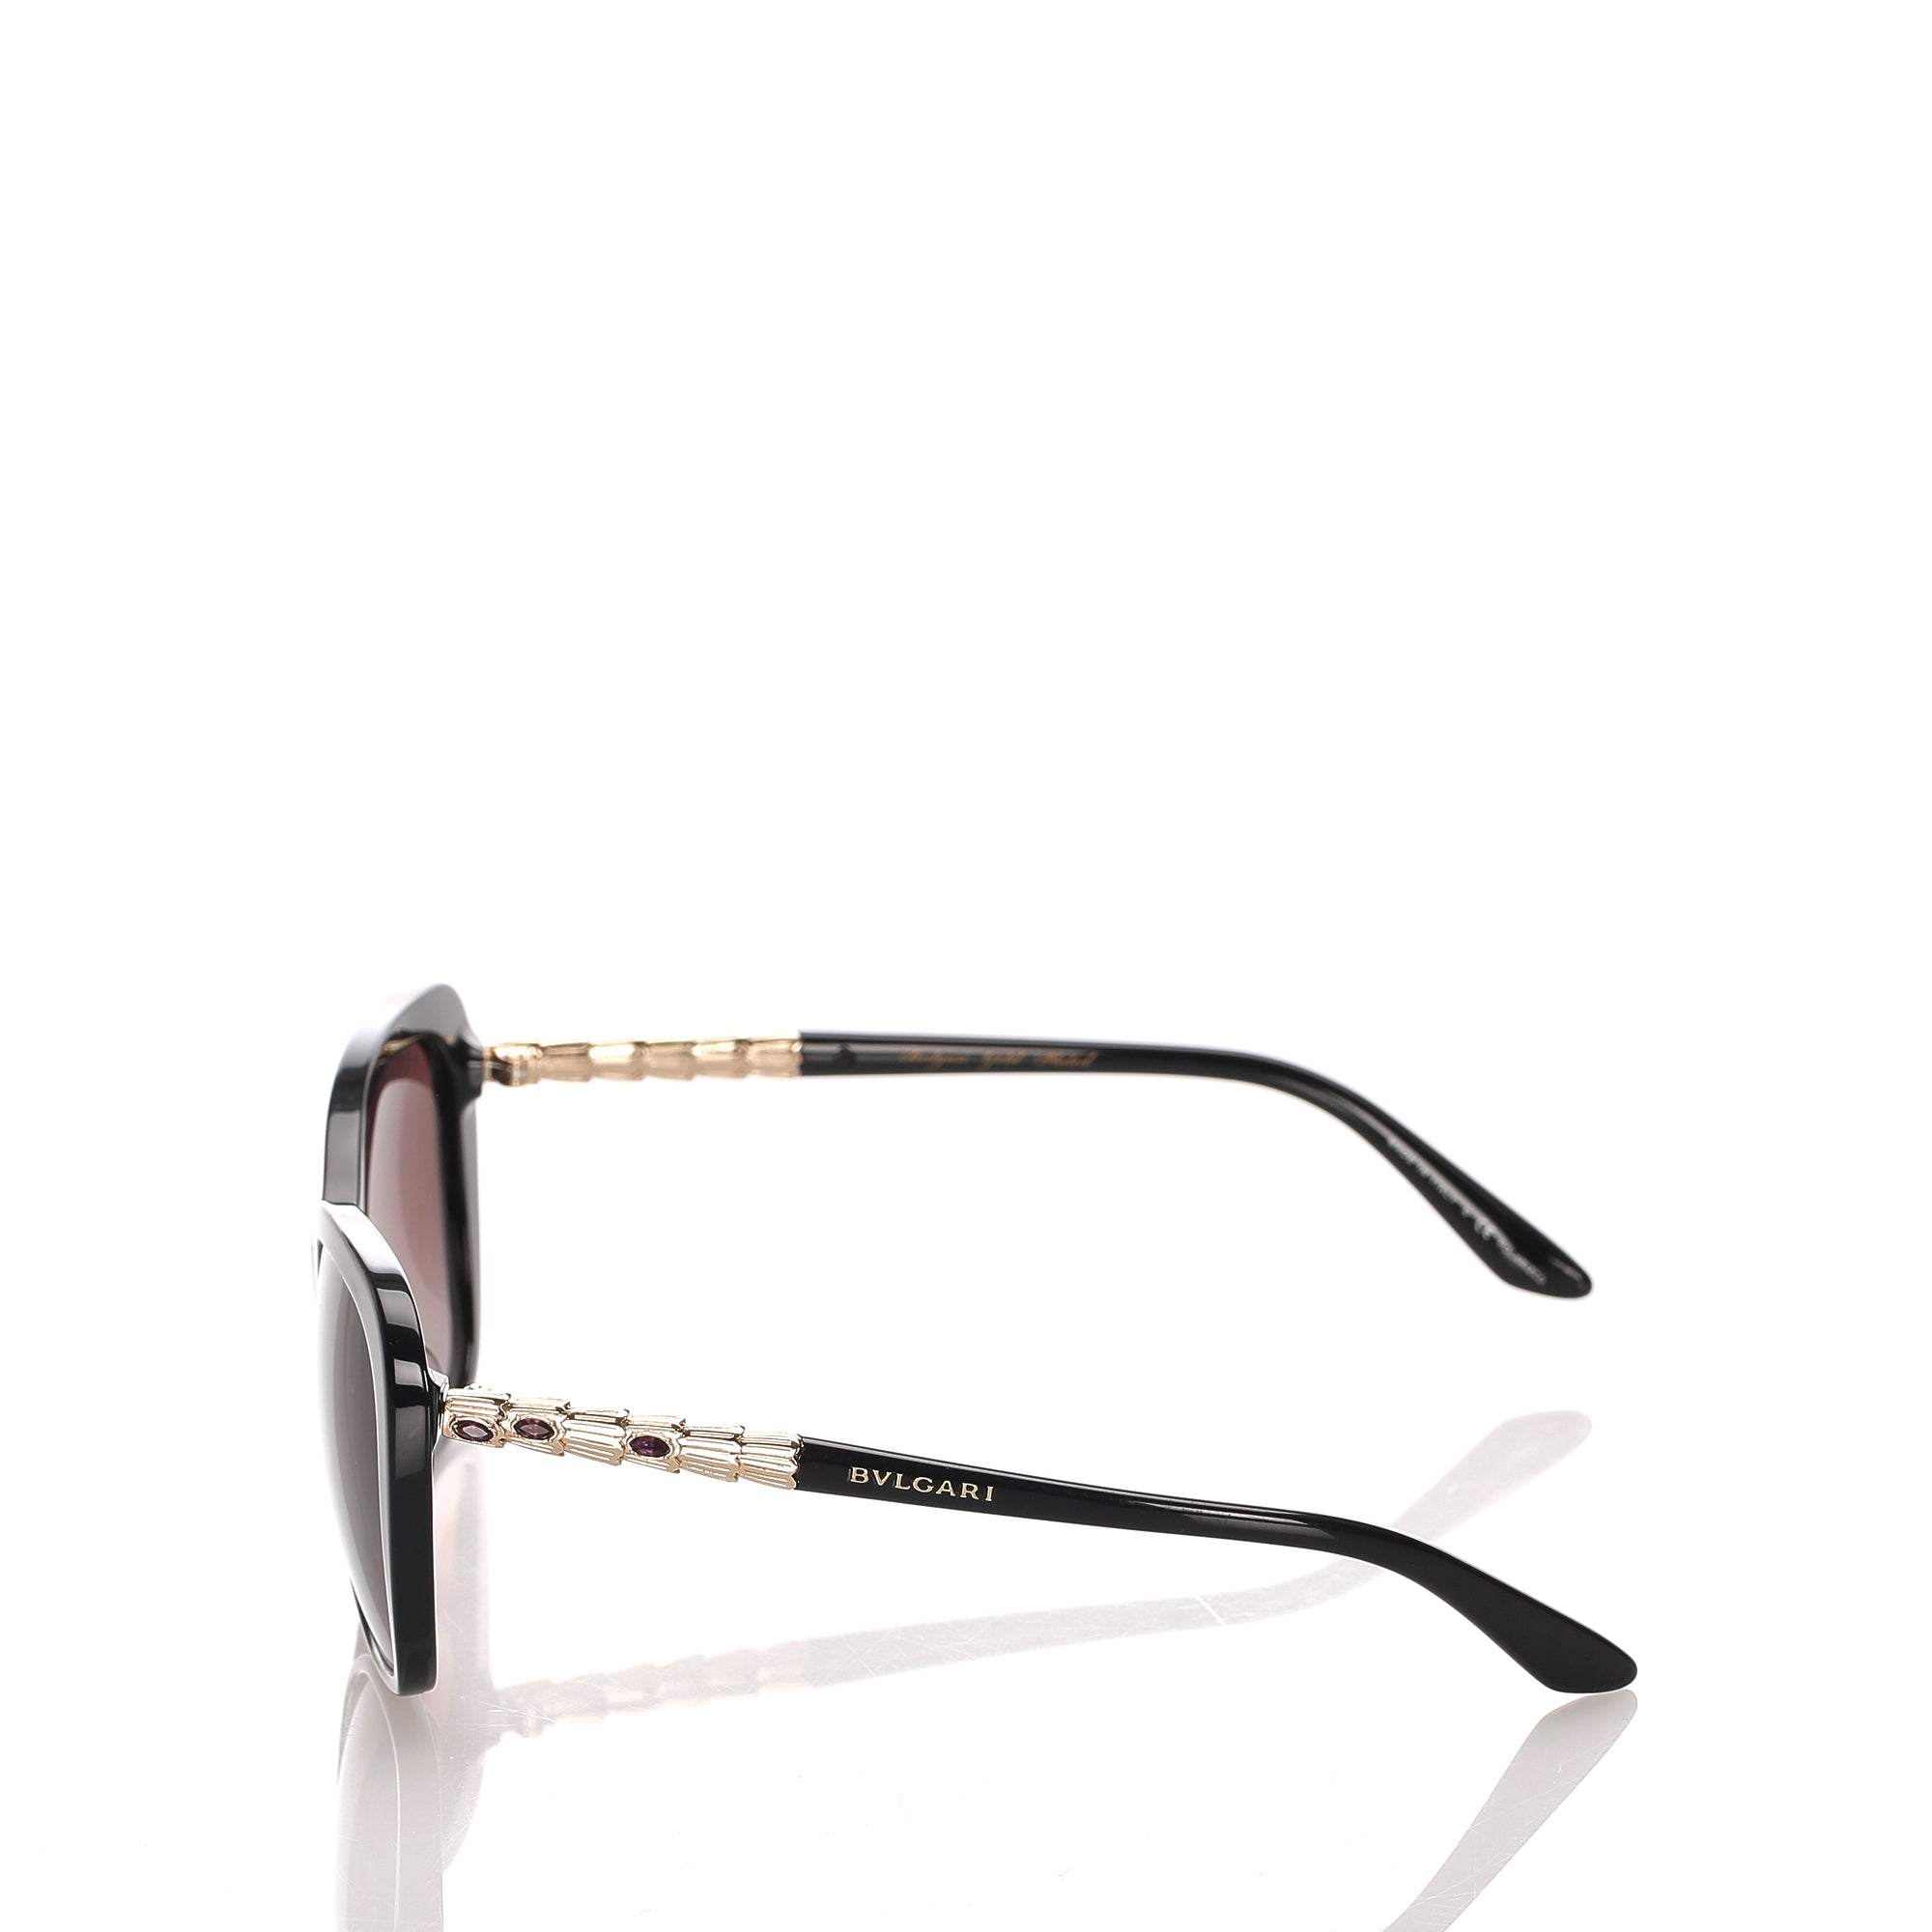 Bvlgari Black Cat Eye Tinted Sunglasses